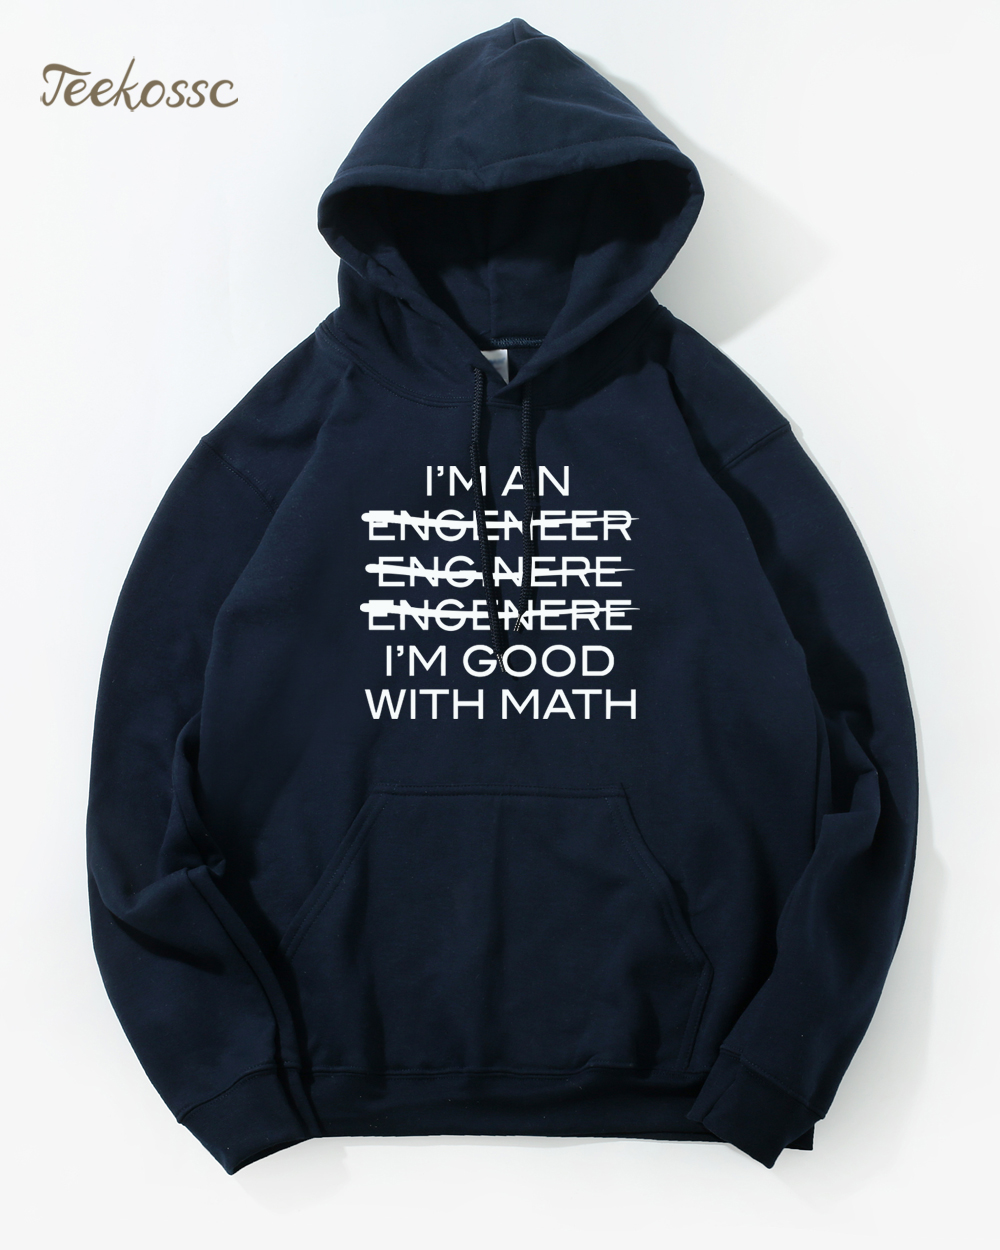 I'm An Engineer I'm Good With Math Hoodie Men Letter Hoodies Mens Winter Autumn Fleece Warm Lightweight Hooded Sweatshirts Male